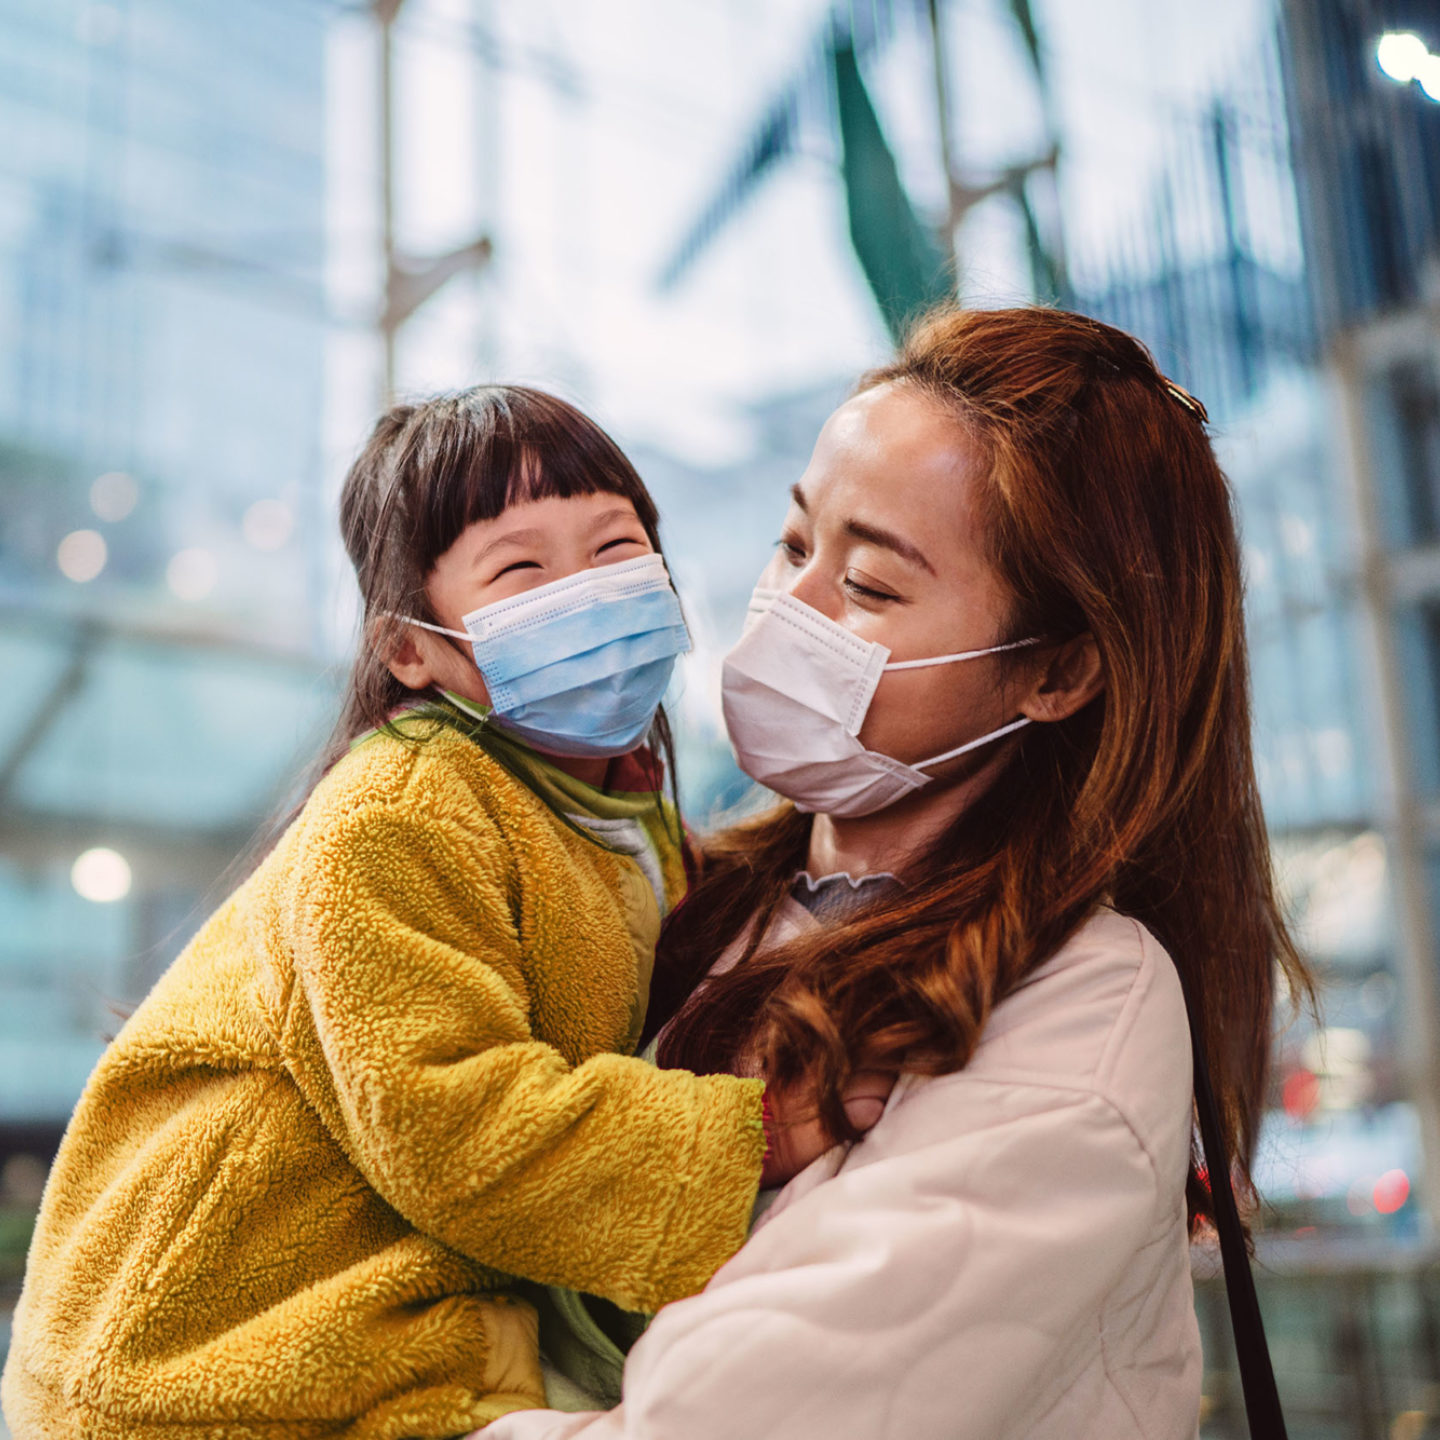 Mother holding daughter while both are wearing masks